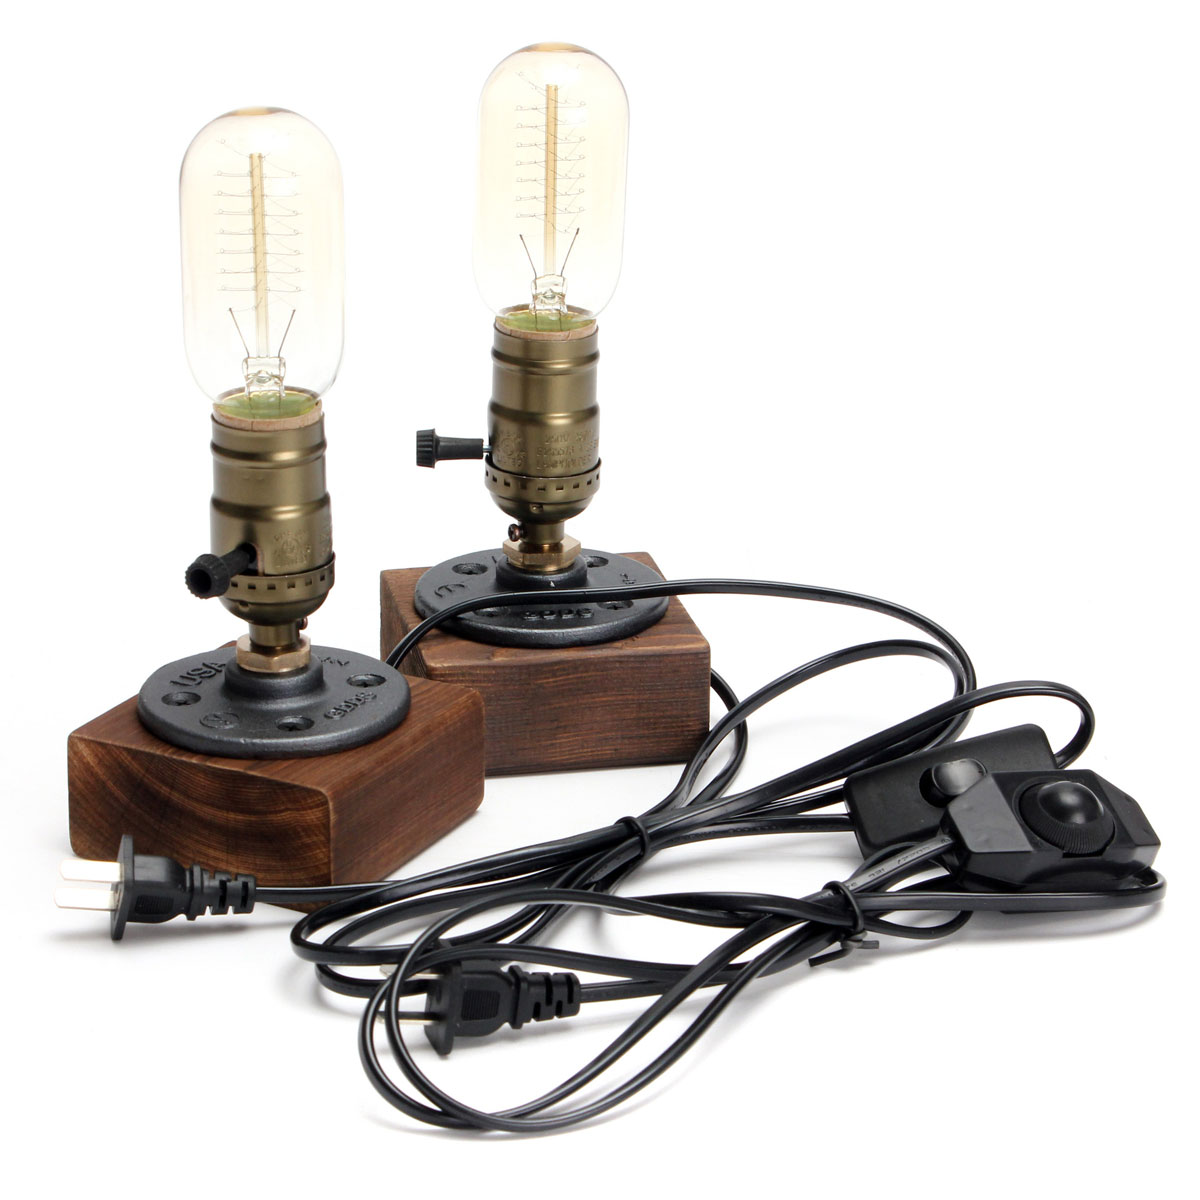 110V-220V Vintage Desk Light Table Lamp Edison Bulb E27 40W Industrial Retro Wooden Socket Lighting Fixture Dimmable Cafe Decor free shipping to russia 10 arms iron socket lighting diy industrial black chandelier with edison bulb 220v or 110v decoration